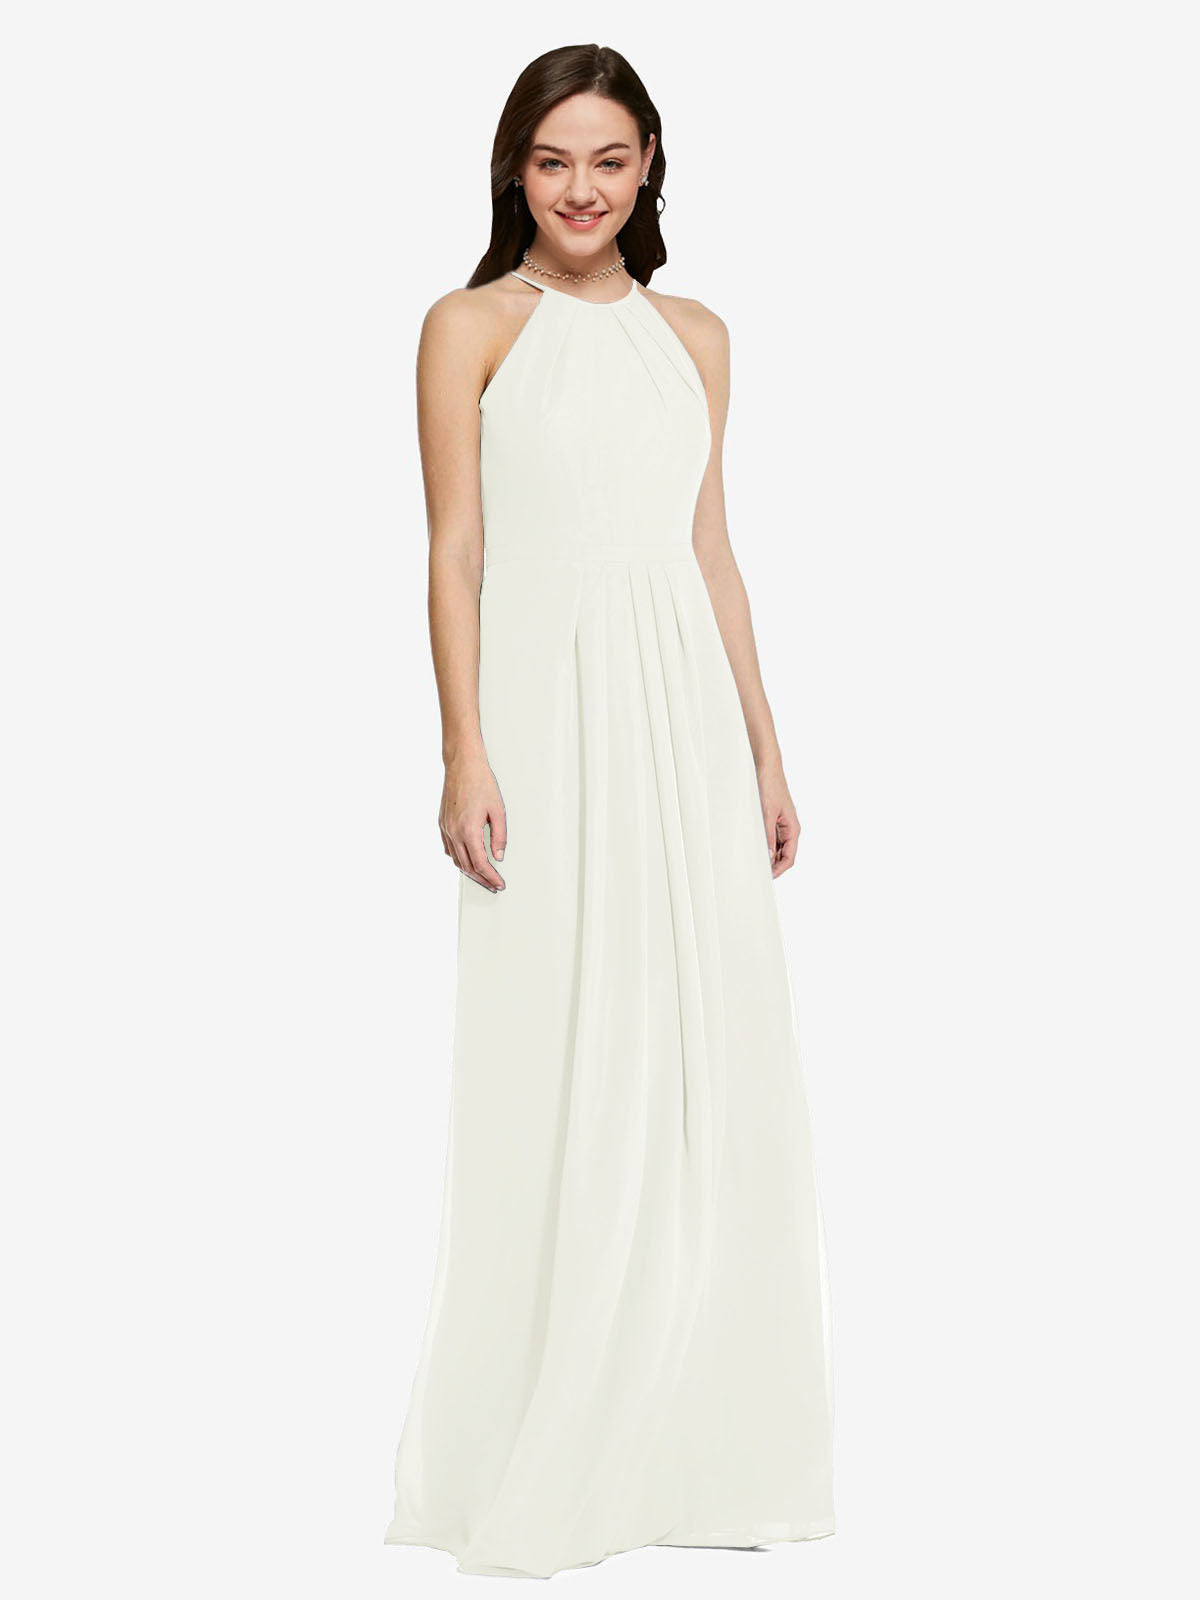 Long Sheath High Neck Halter Sleeveless Ivory Chiffon Bridesmaid Dress Koloti